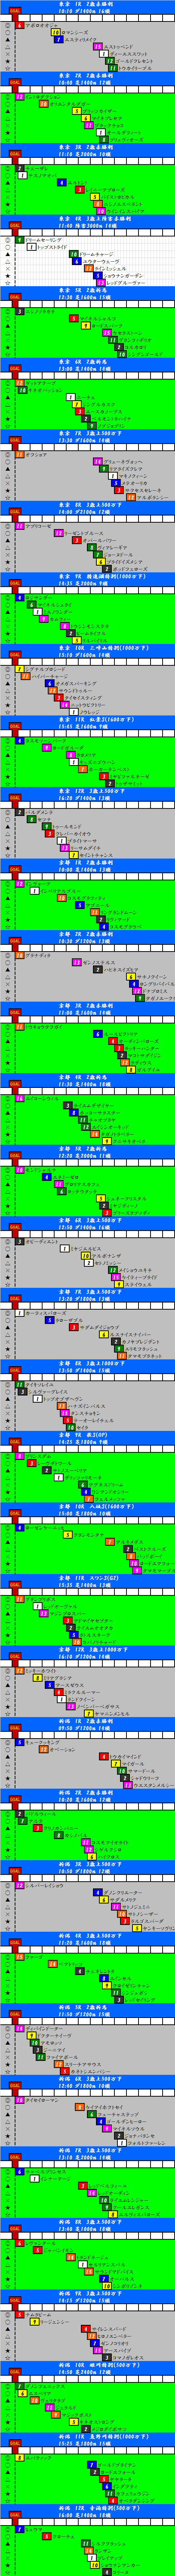 20131026.png